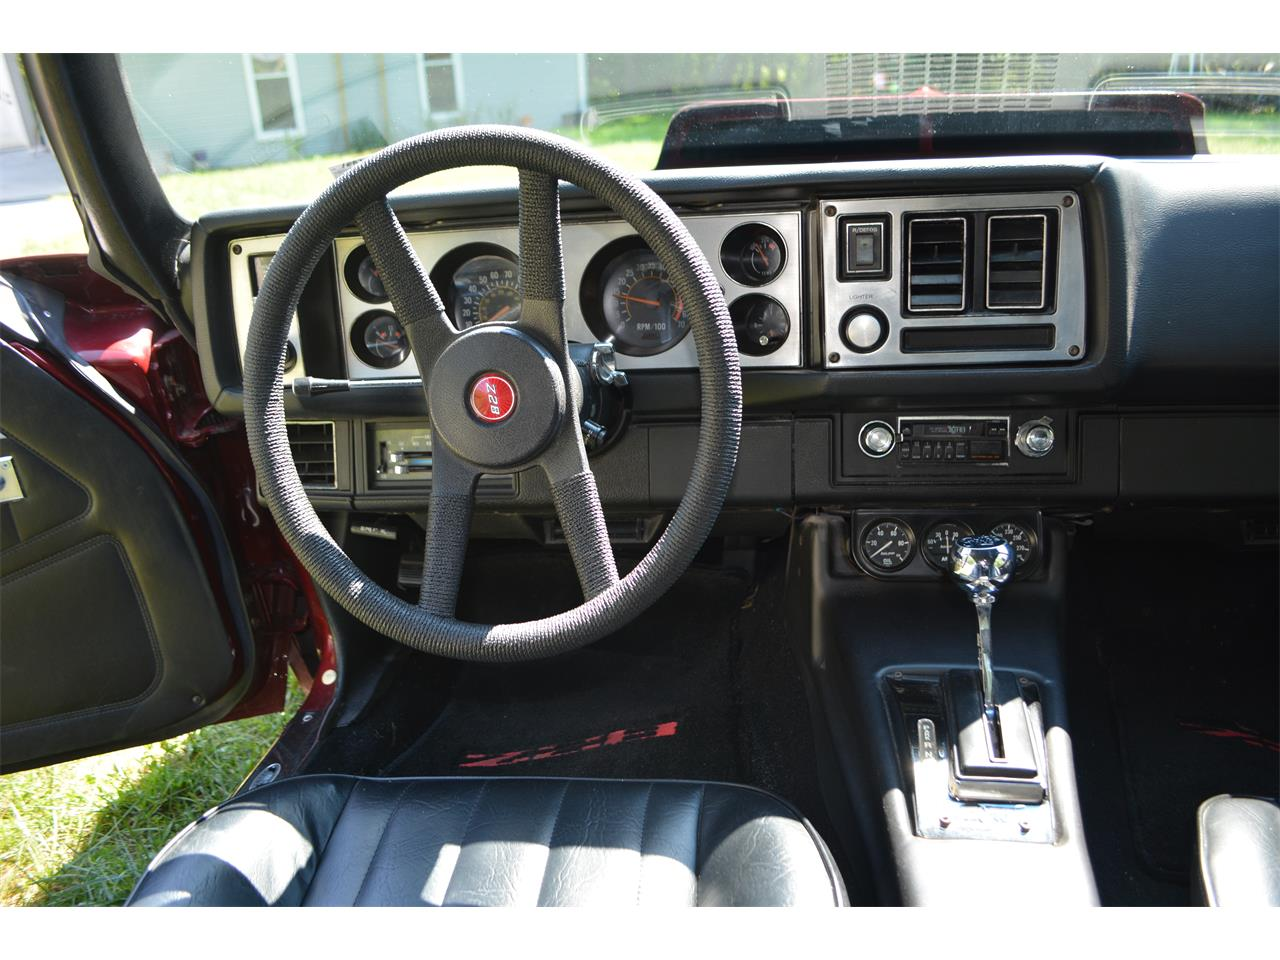 Large Picture of '79 Camaro Z28 - $17,500.00 Offered by a Private Seller - OTFP